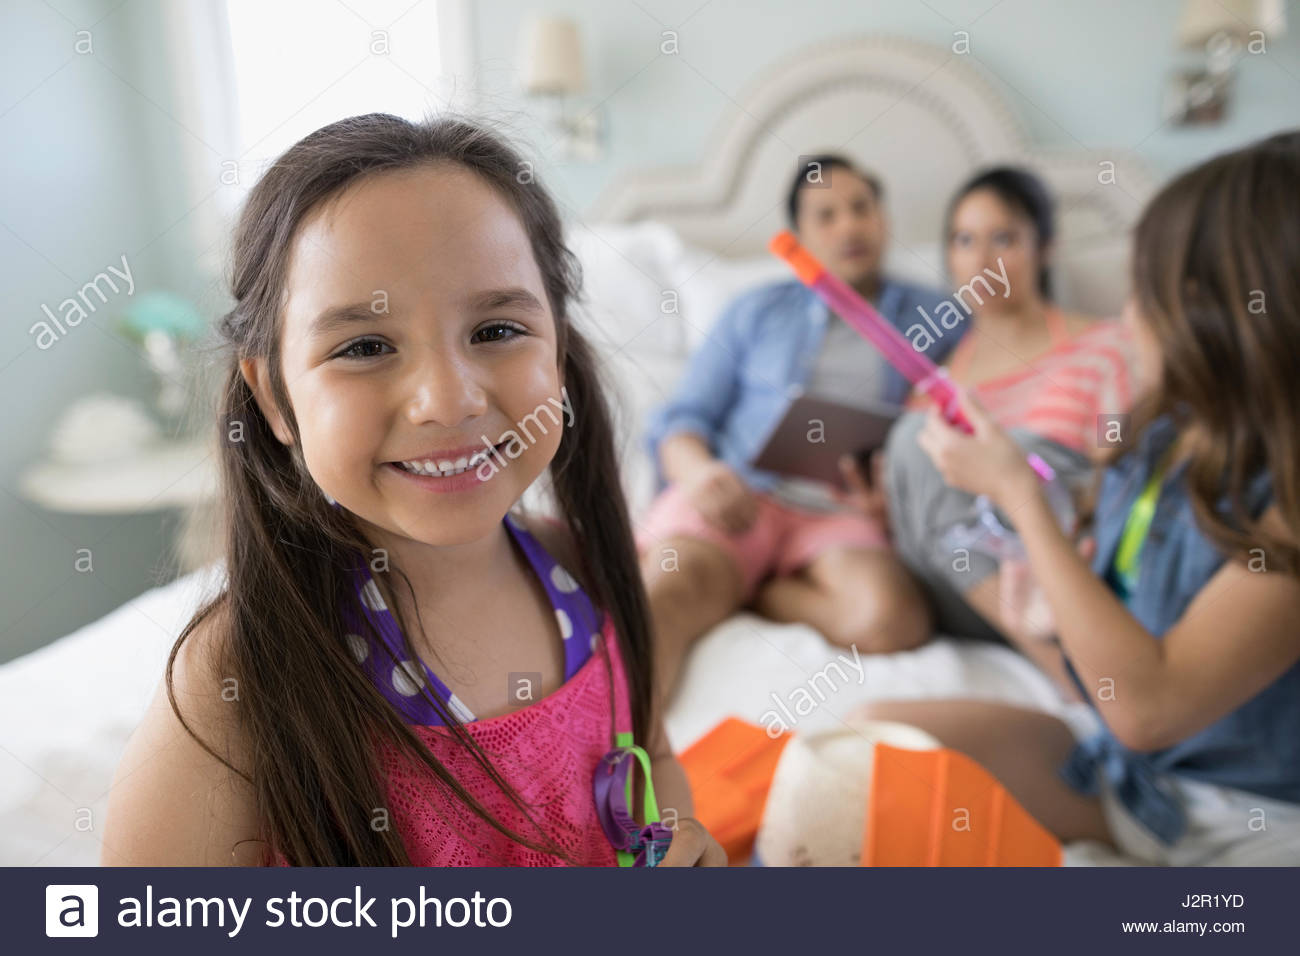 Portrait smiling girl on bed with family Photo Stock